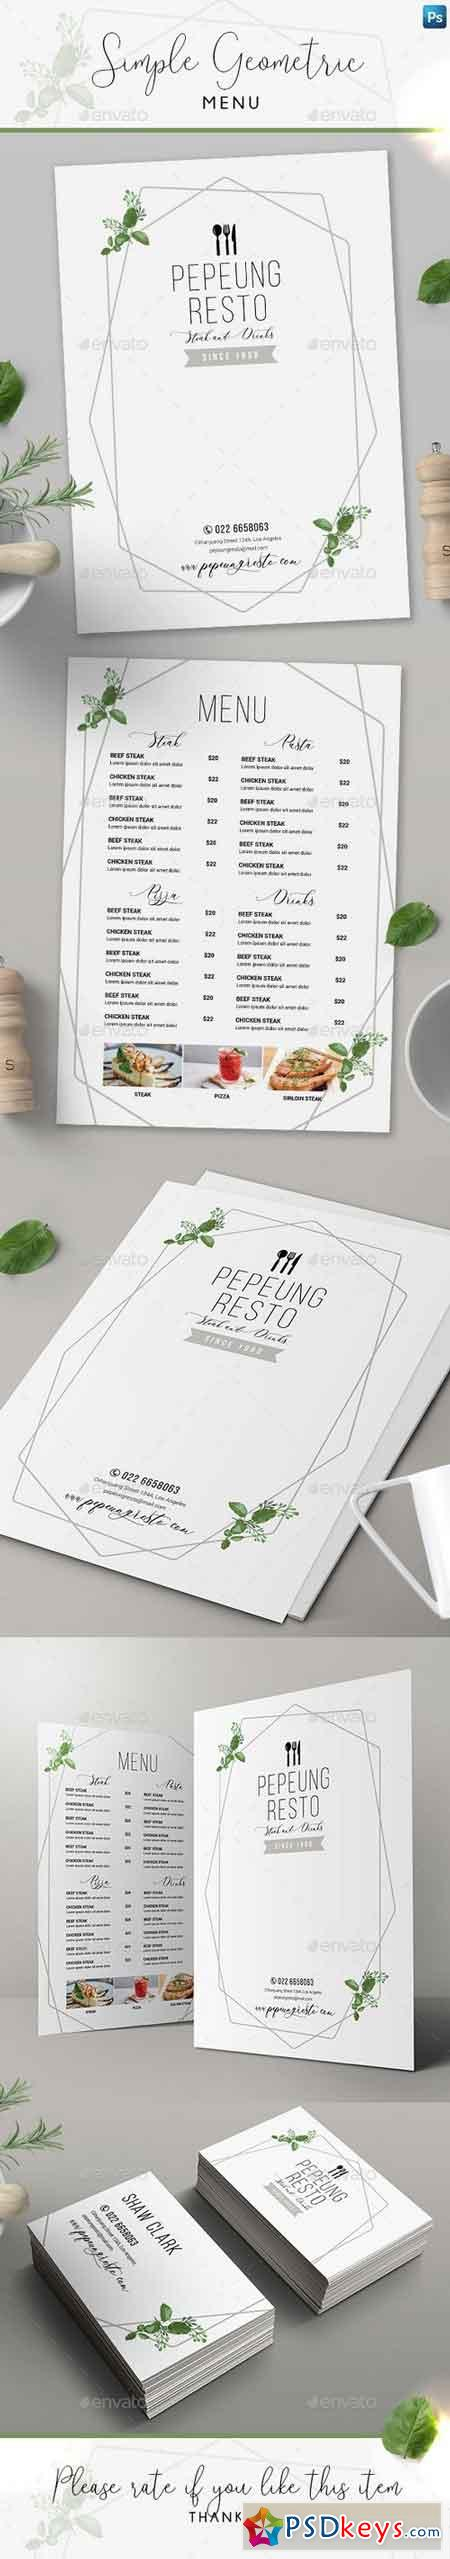 Simple Geometric Menu + Business Card 22277531